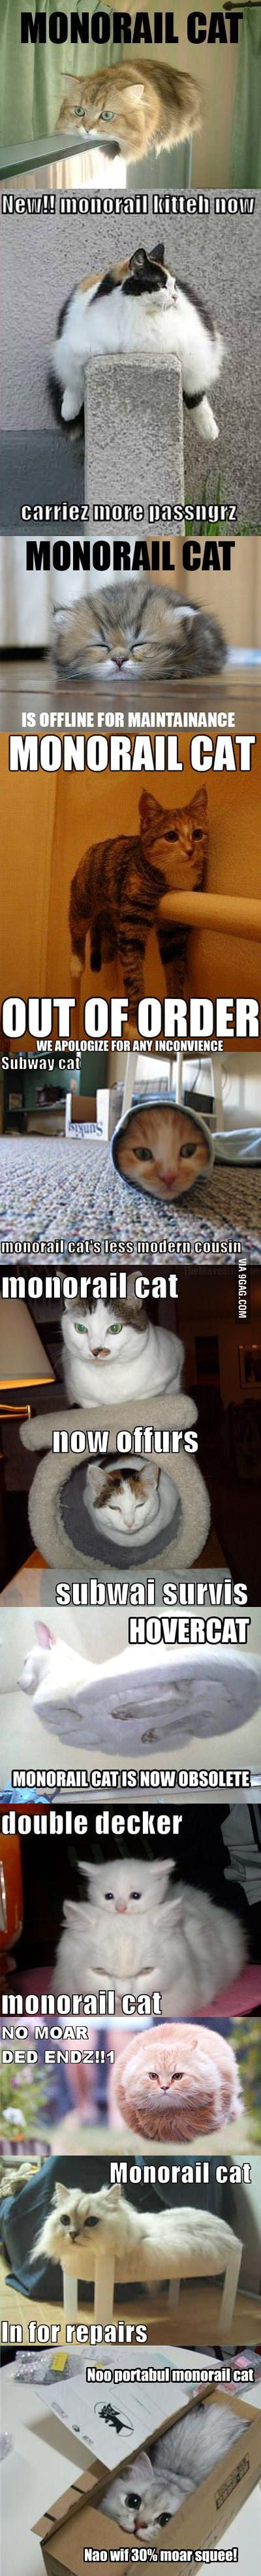 Monorail cats